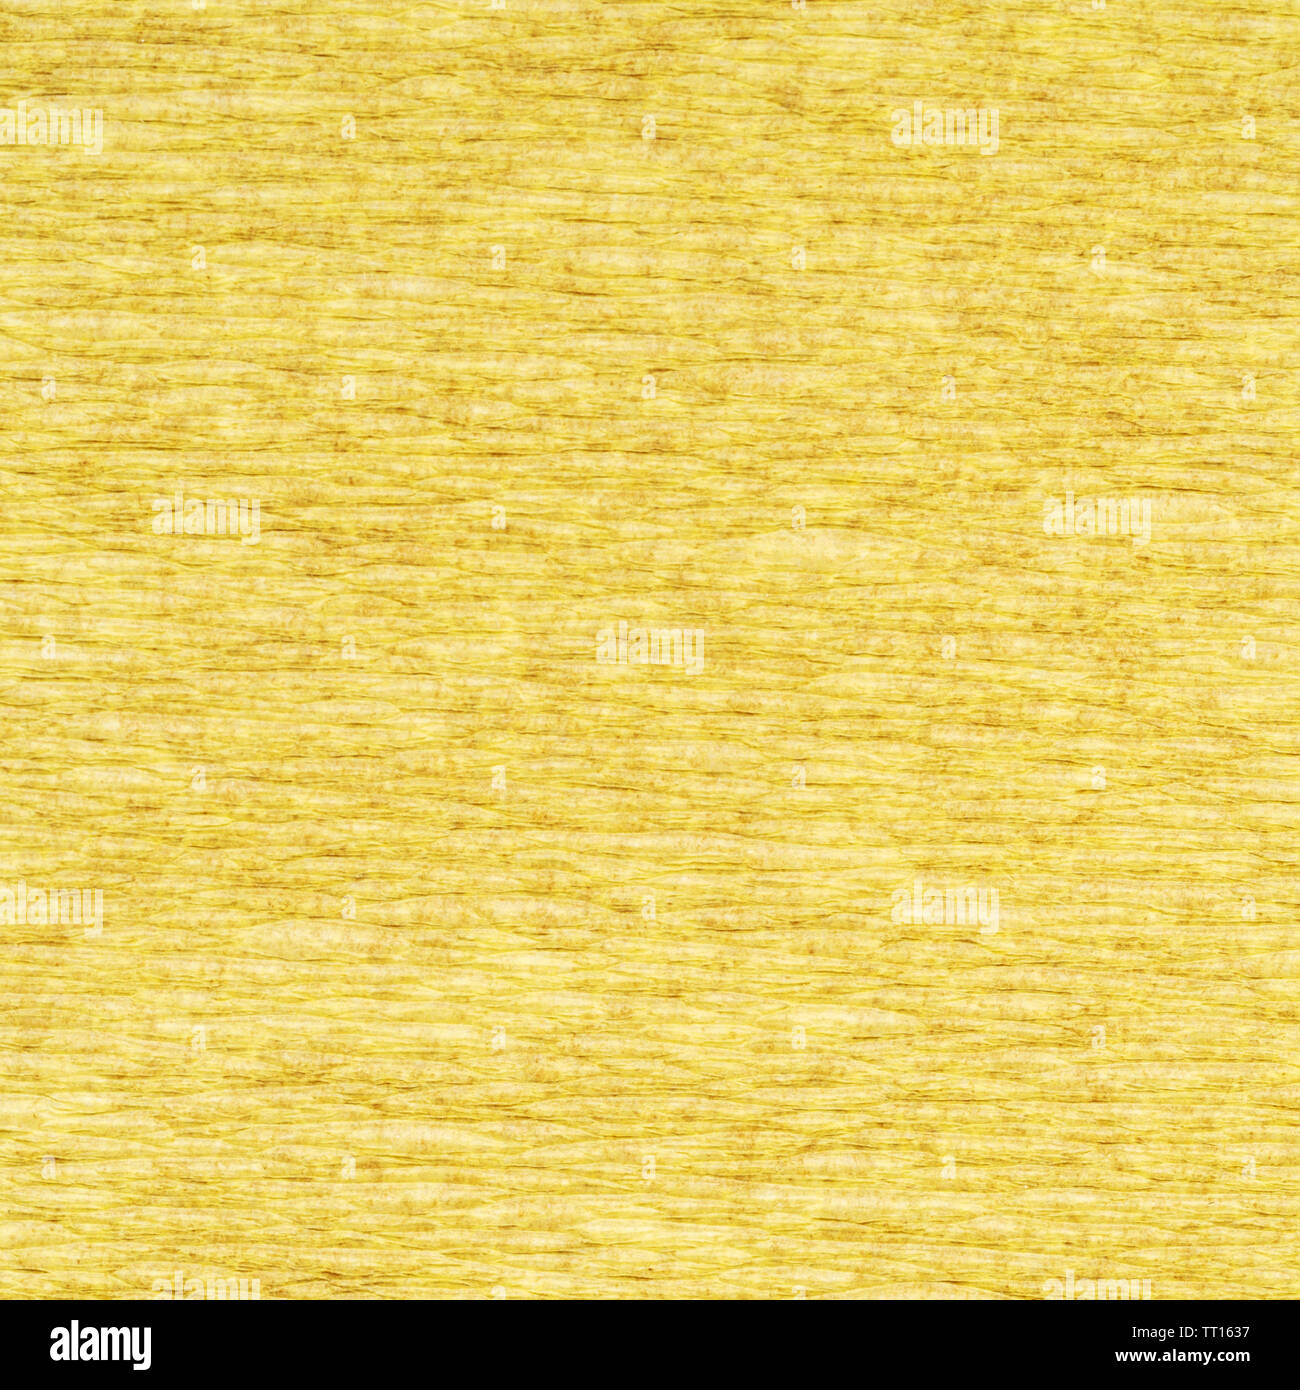 Crepe Paper Stock Photos & Crepe Paper Stock Images - Alamy